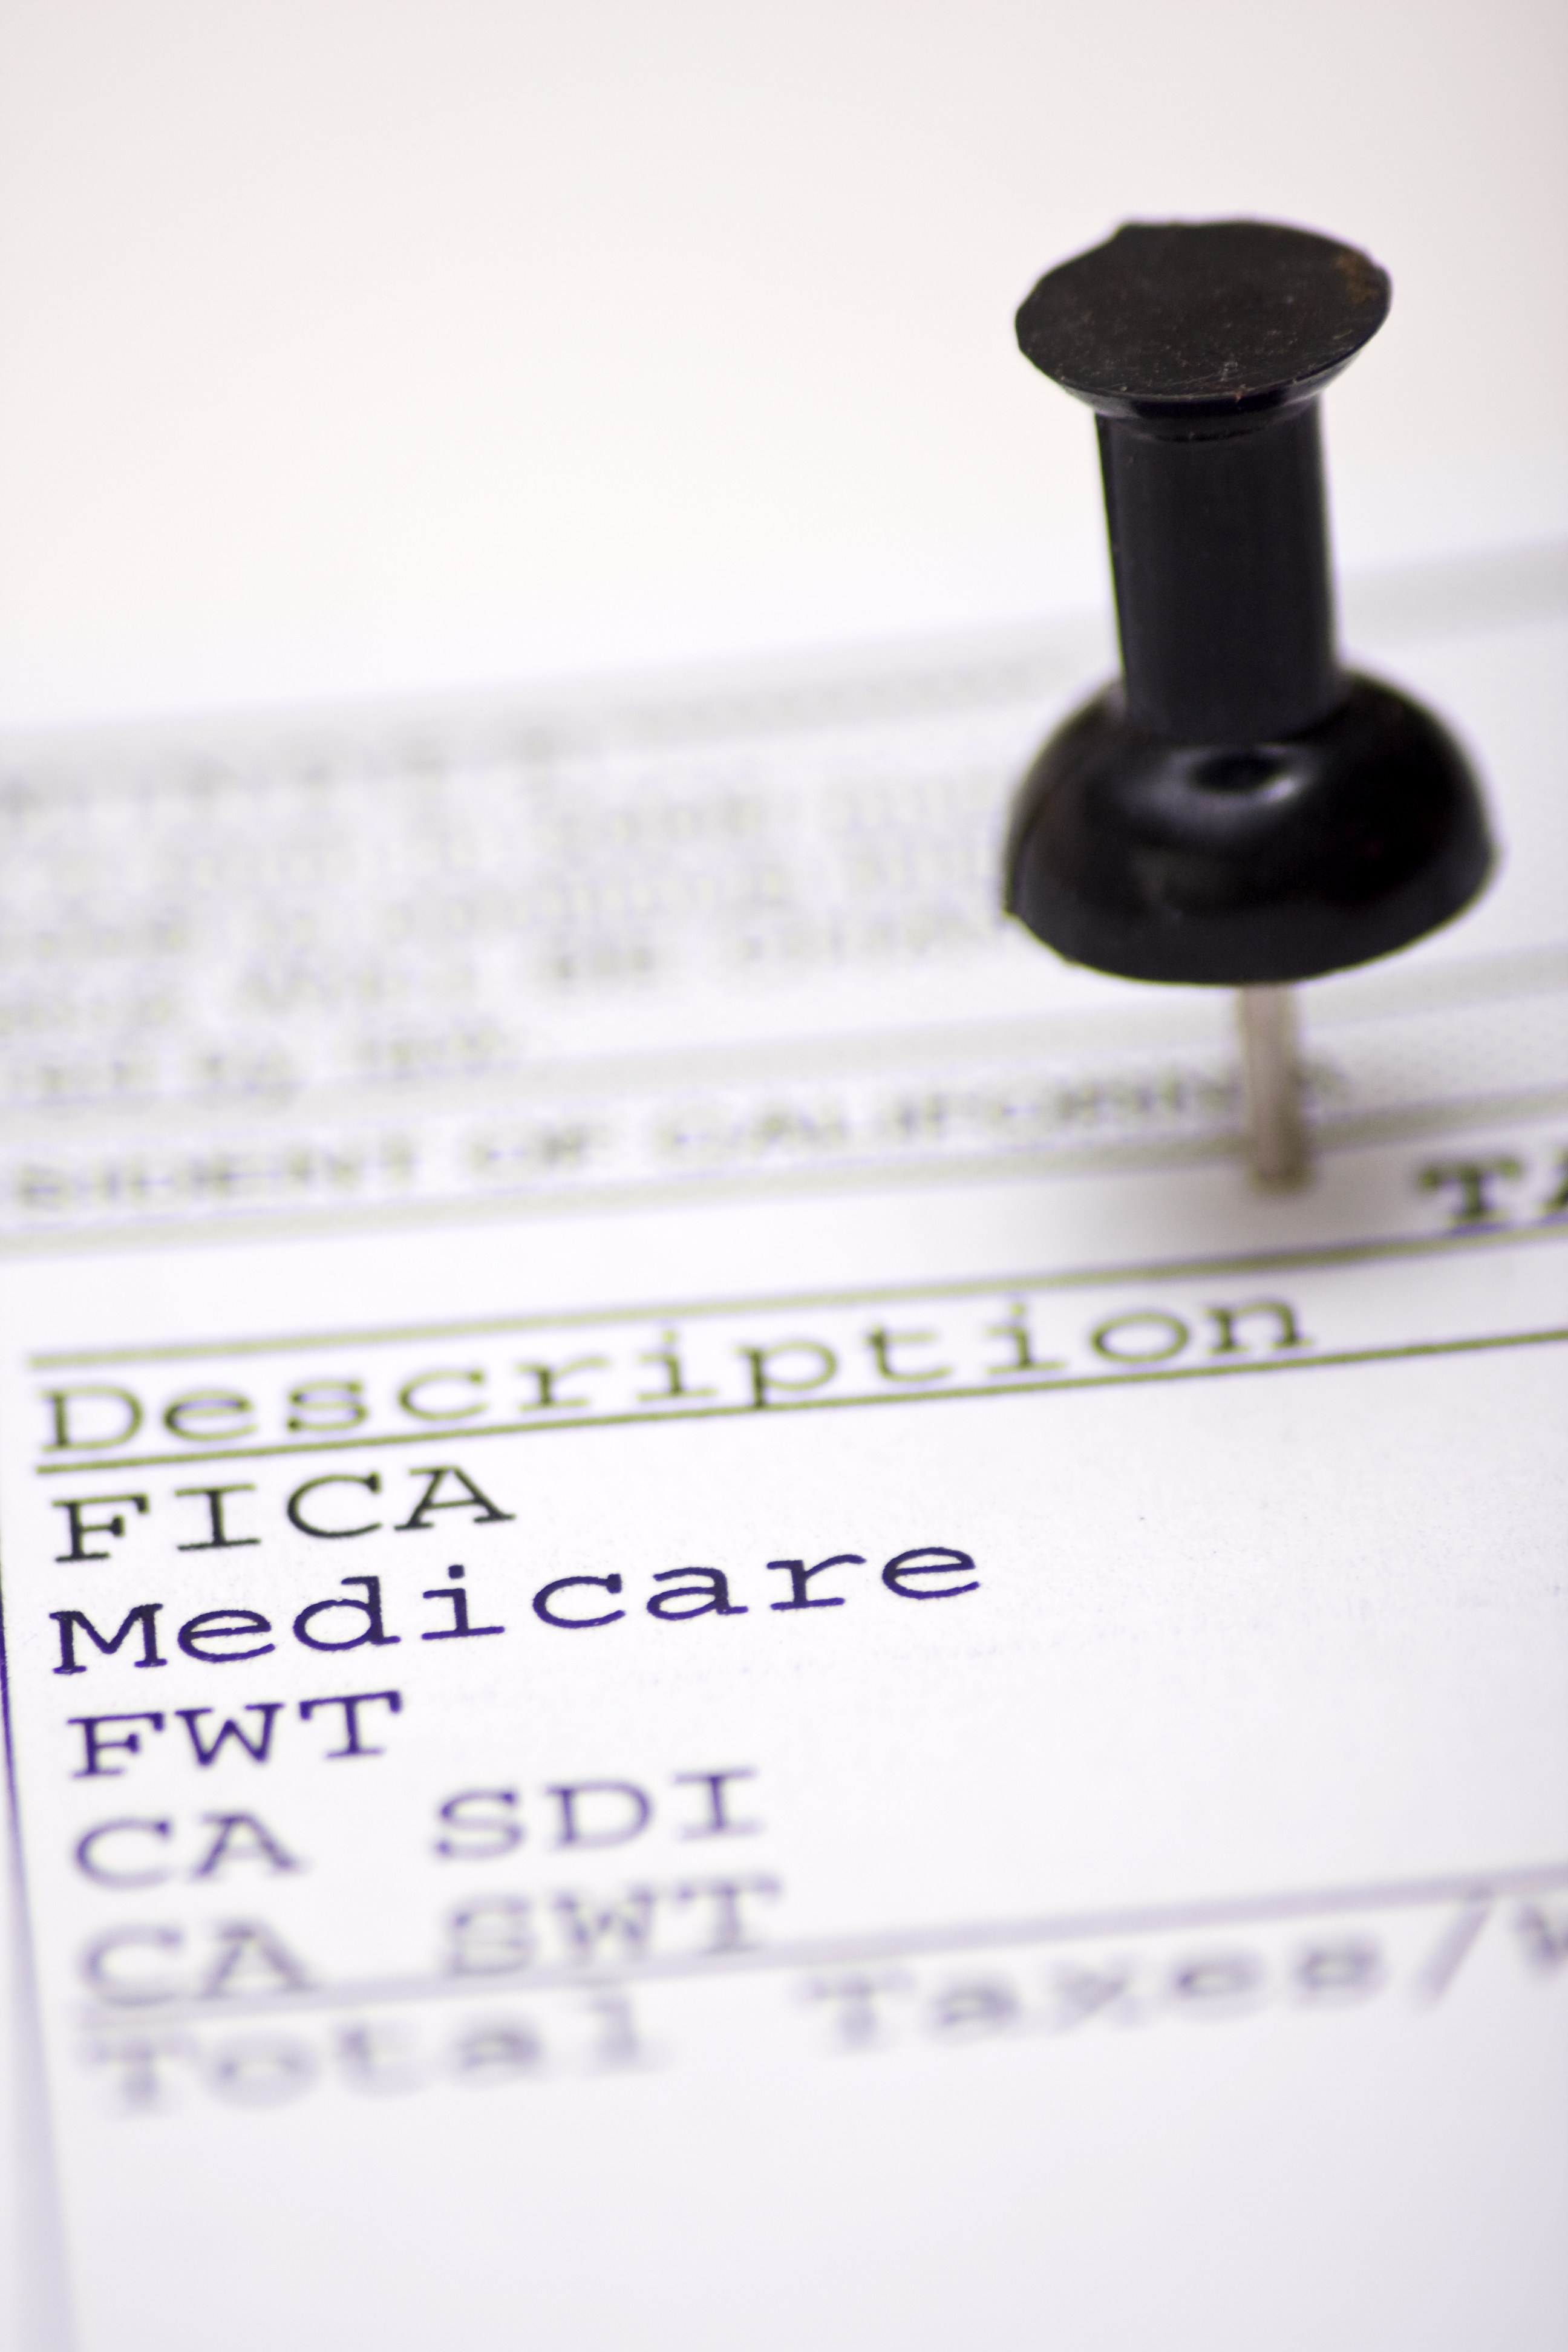 Reeve Foundation to host SSDI/Medicare webinar on May 22